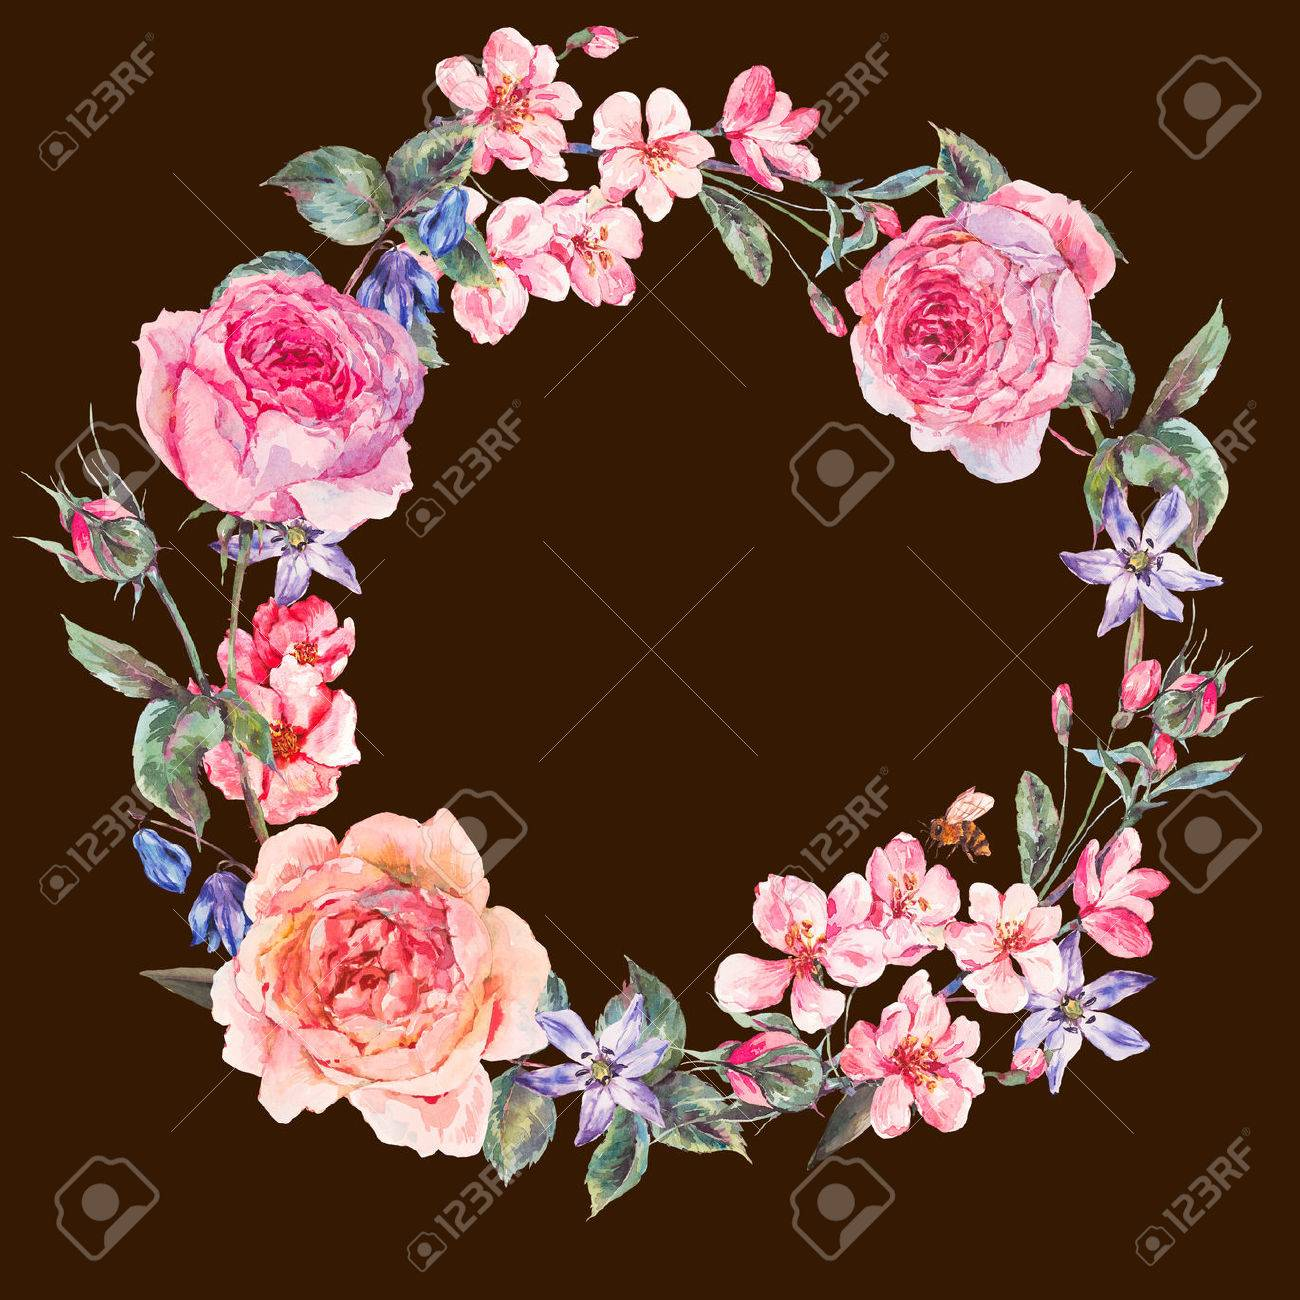 Vintage Garden Watercolor Spring Round Floral Wreath With Pink ...